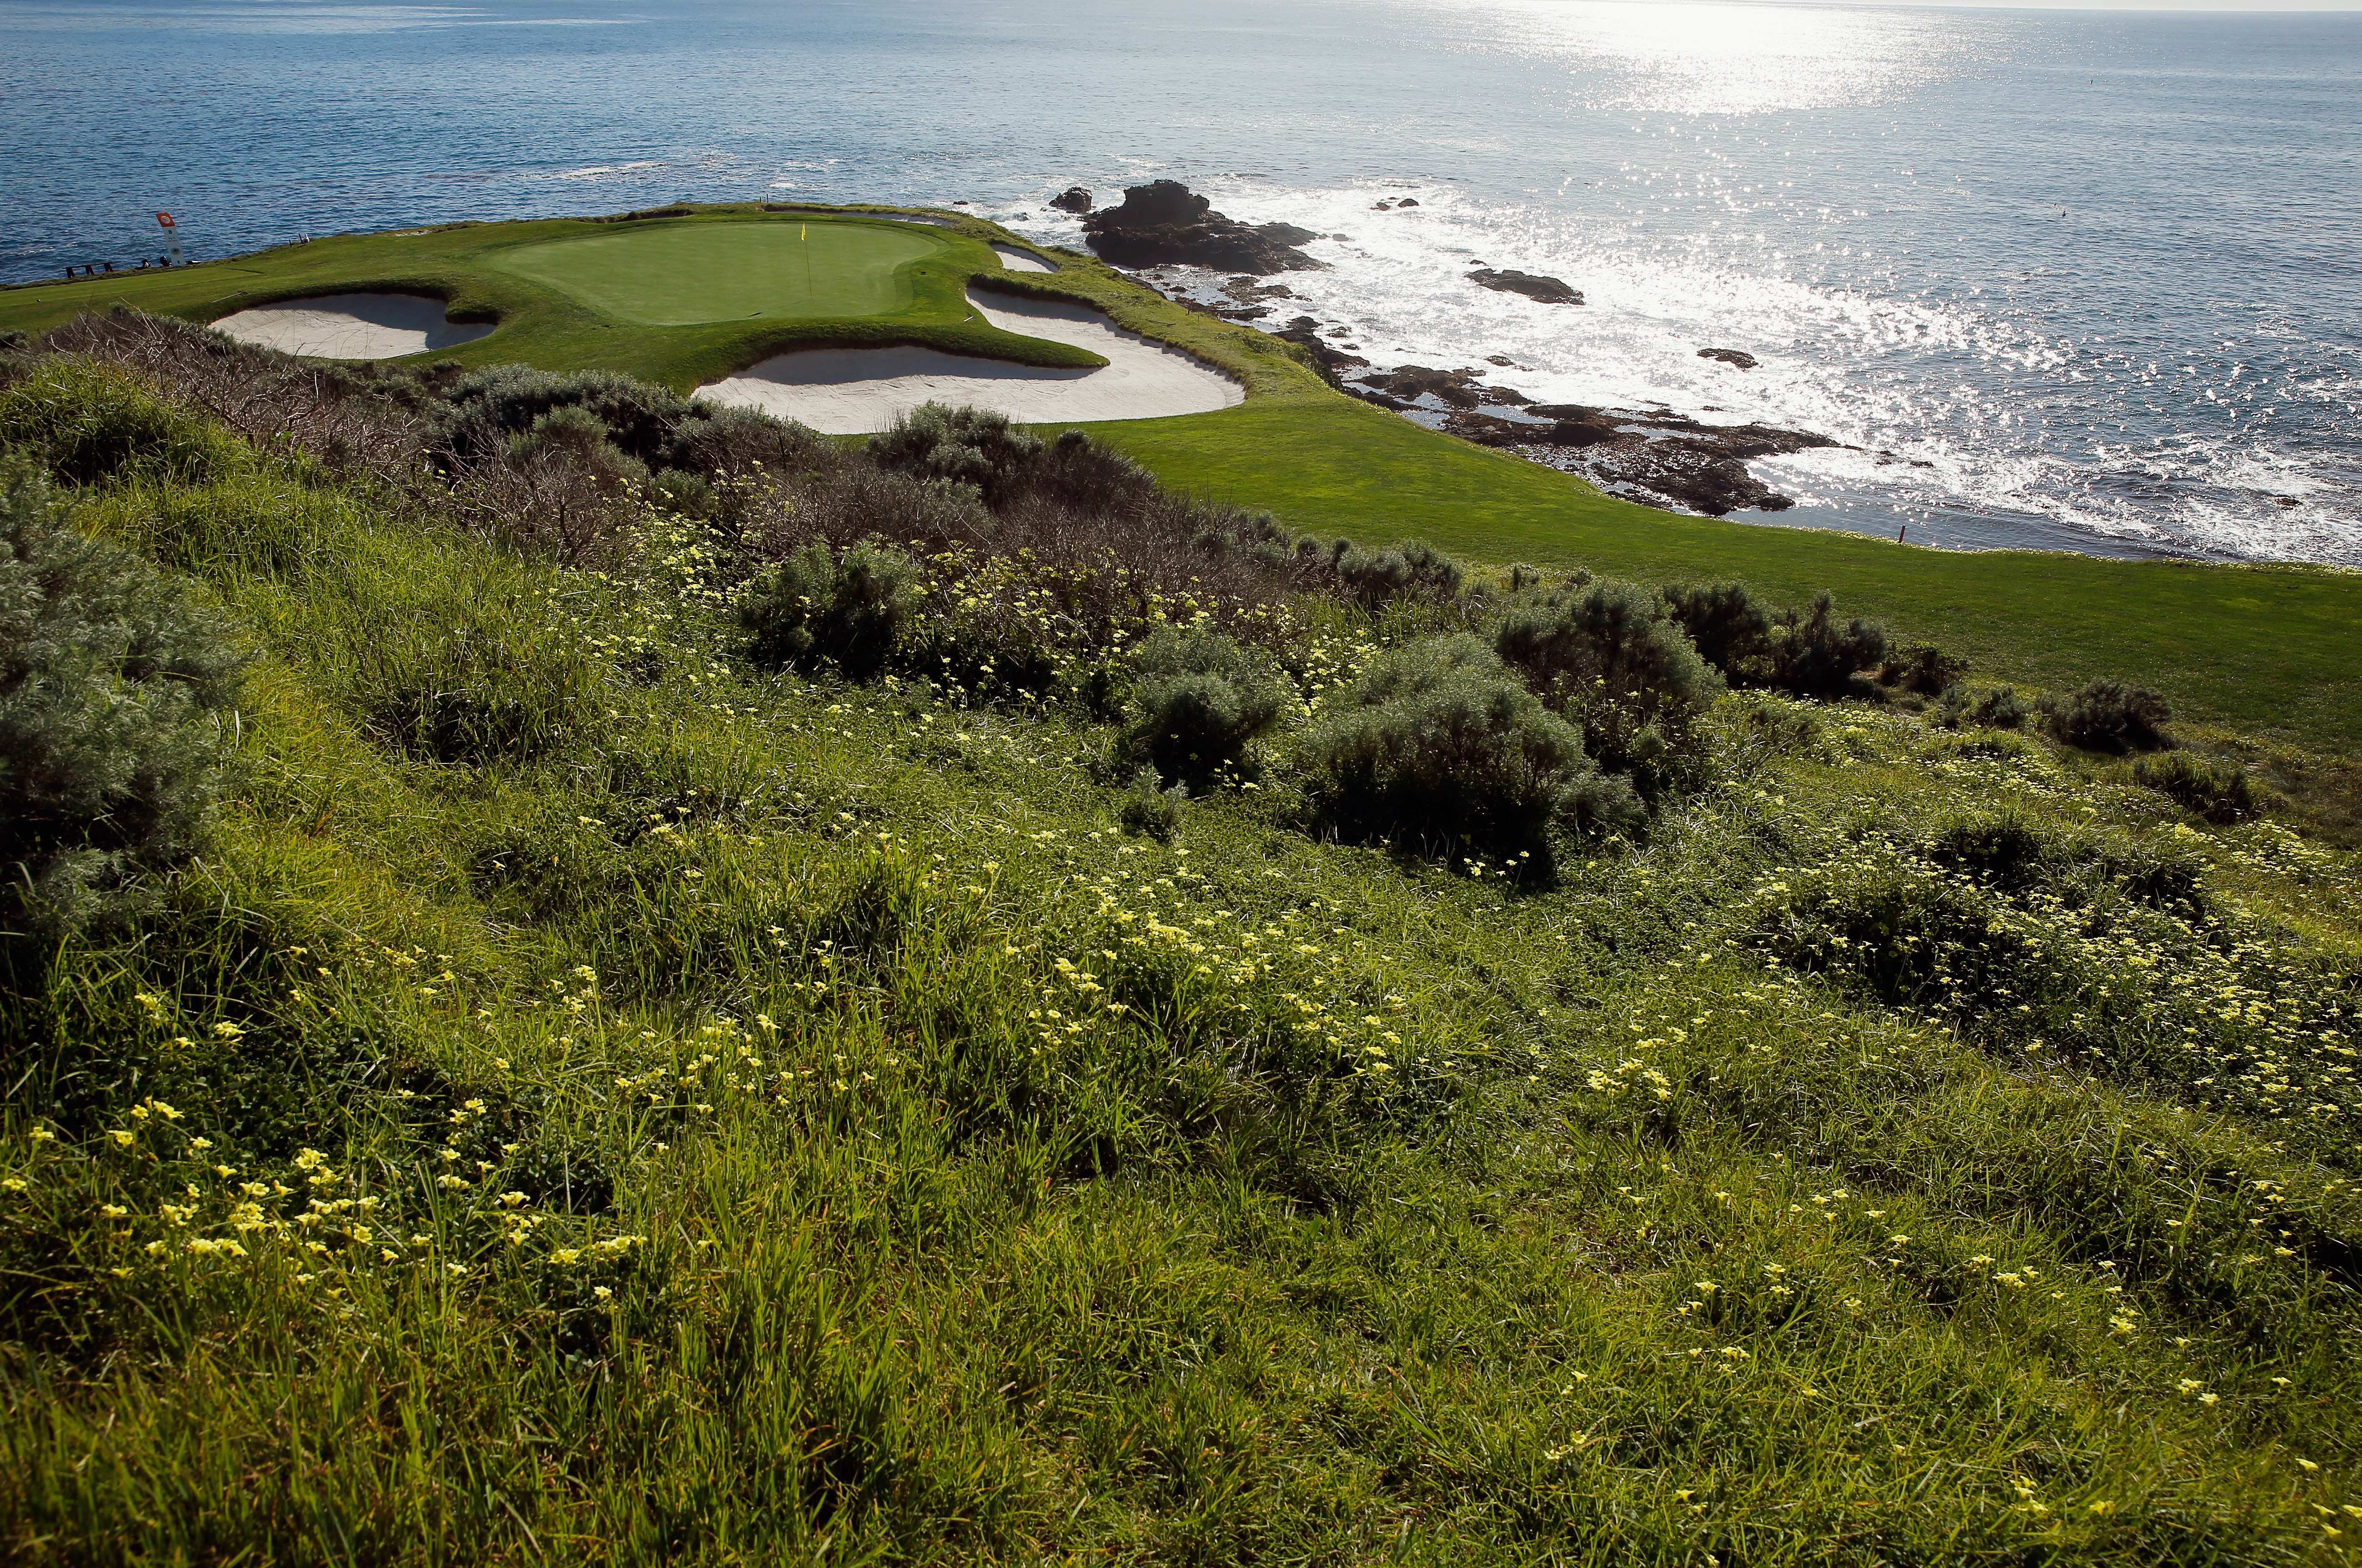 PEBBLE BEACH, CA - FEBRUARY 11: A general view of the seventh hole prior to the start of the AT&T Pebble Beach National Pro-Am at the Pebble Beach Golf Links on February 11, 2015 in Pebble Beach, California. (Photo by Scott Halleran/Getty Images)